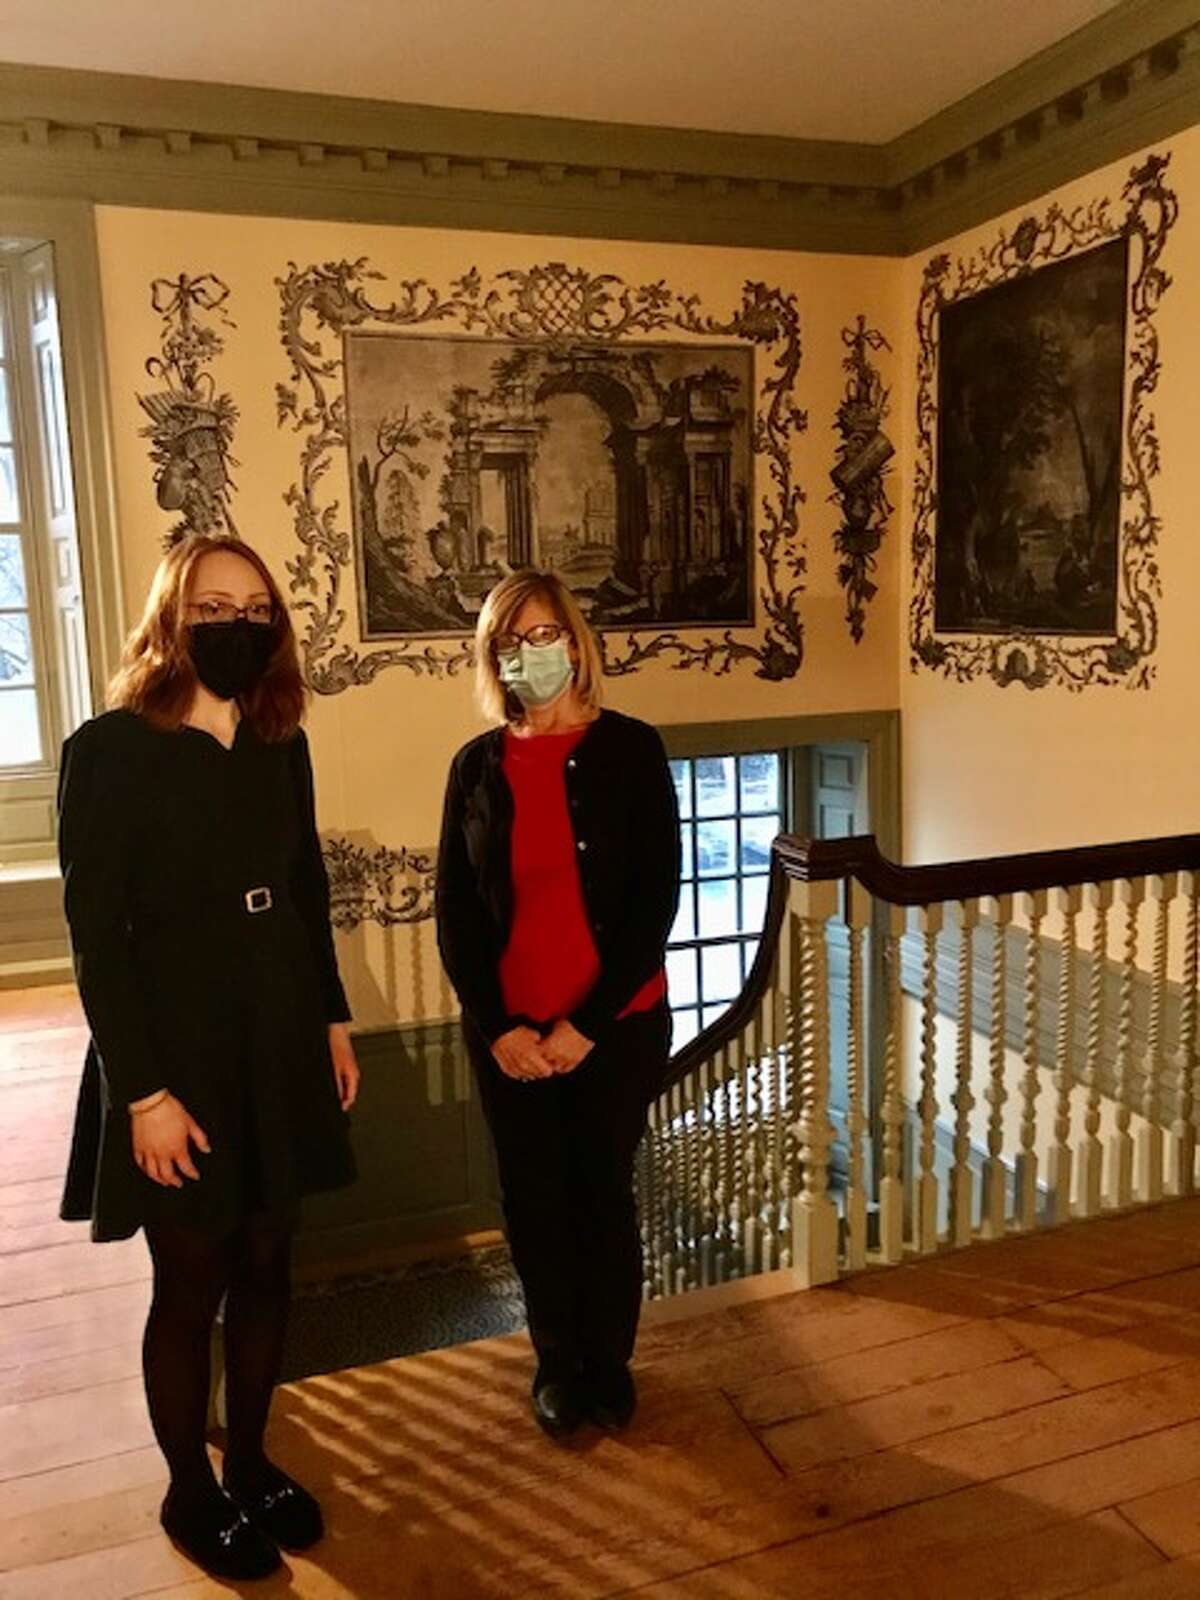 essie Serfilippi, interpreter, and Heidi Hill, site manager, on the second-floor landing in the Schuyler Mansion, where tours include new research on the slave-owning past of the Schuyler family and Alexander Hamilton.